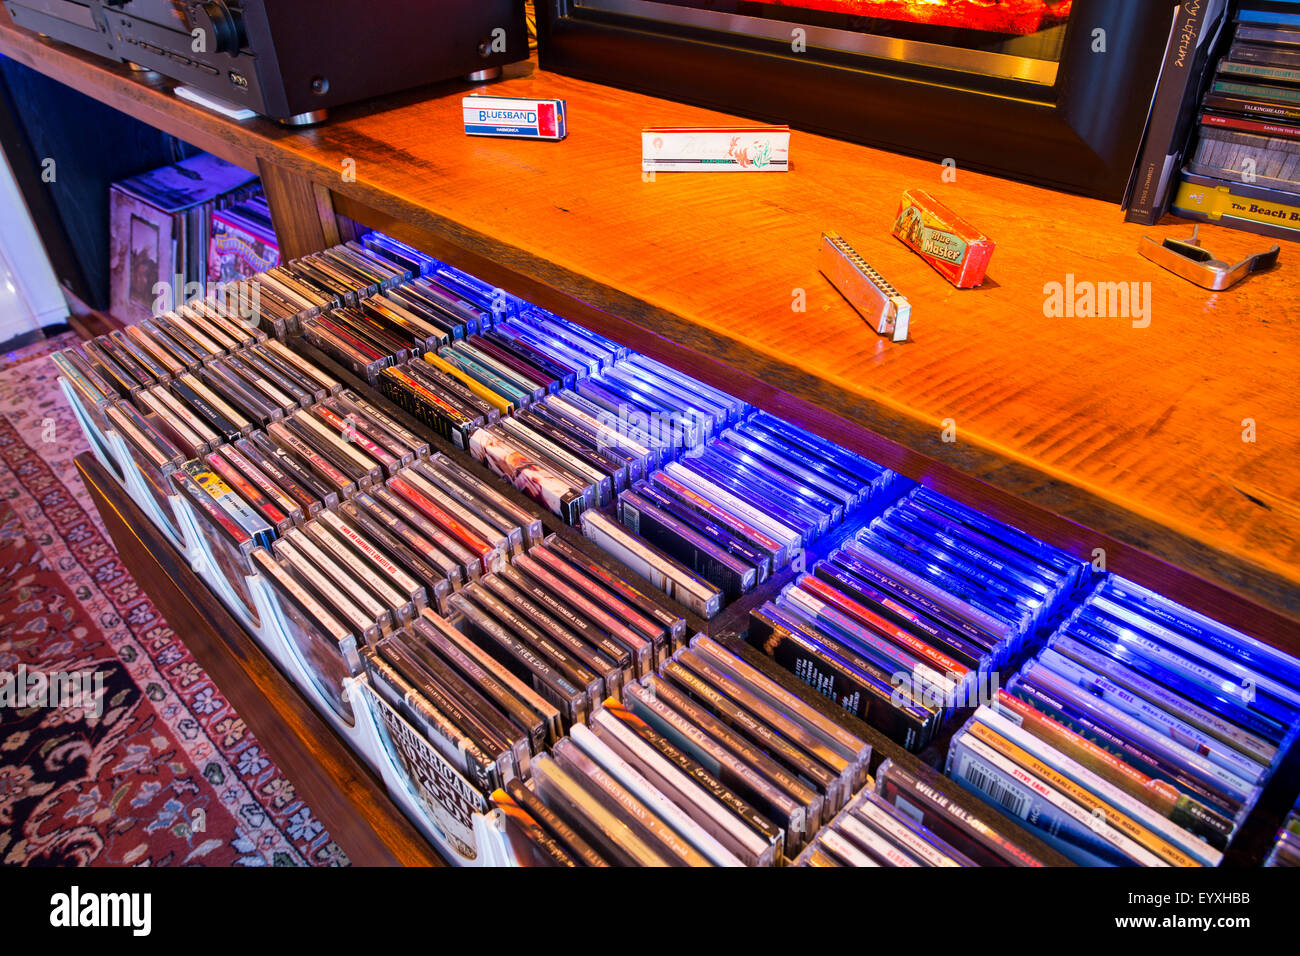 storage drawer with compact disc, North America, Canada, Ontario - Stock Image